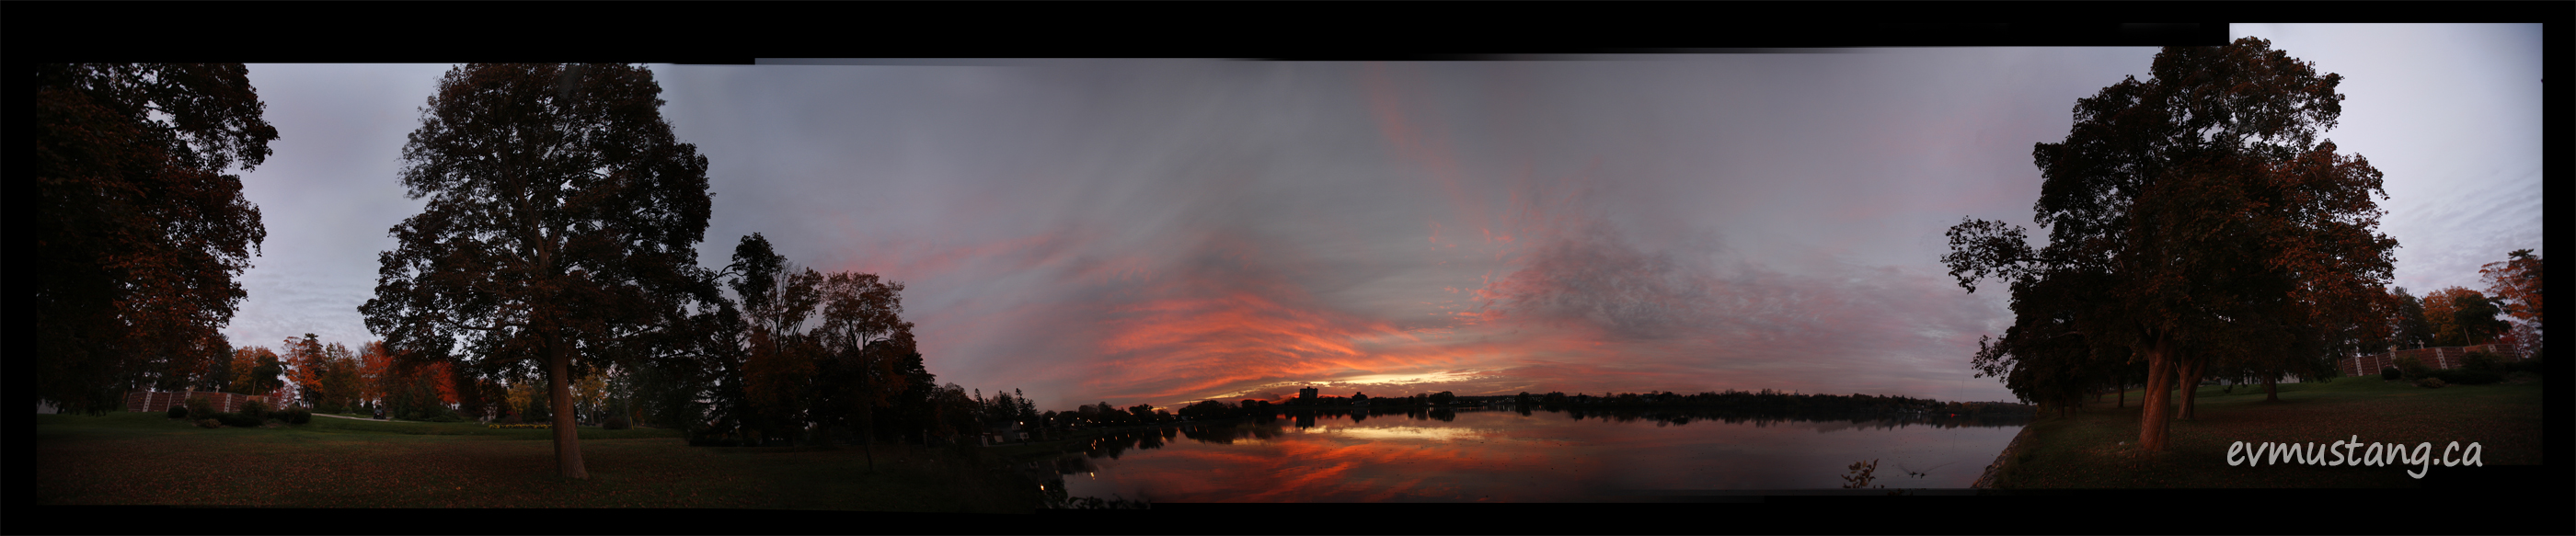 360 degree image of little lake, peterborough at sunset in fall